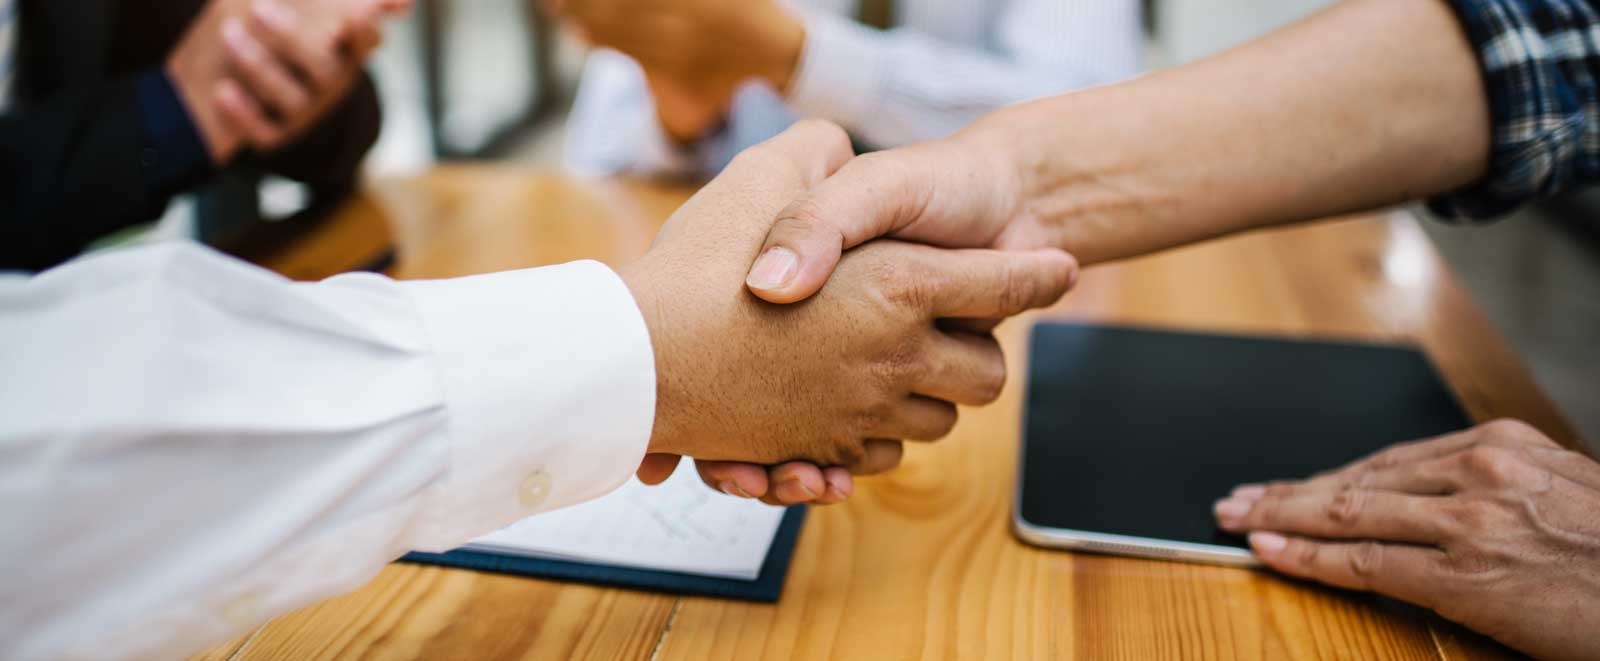 in raise business man shaking hands work corporate meeting